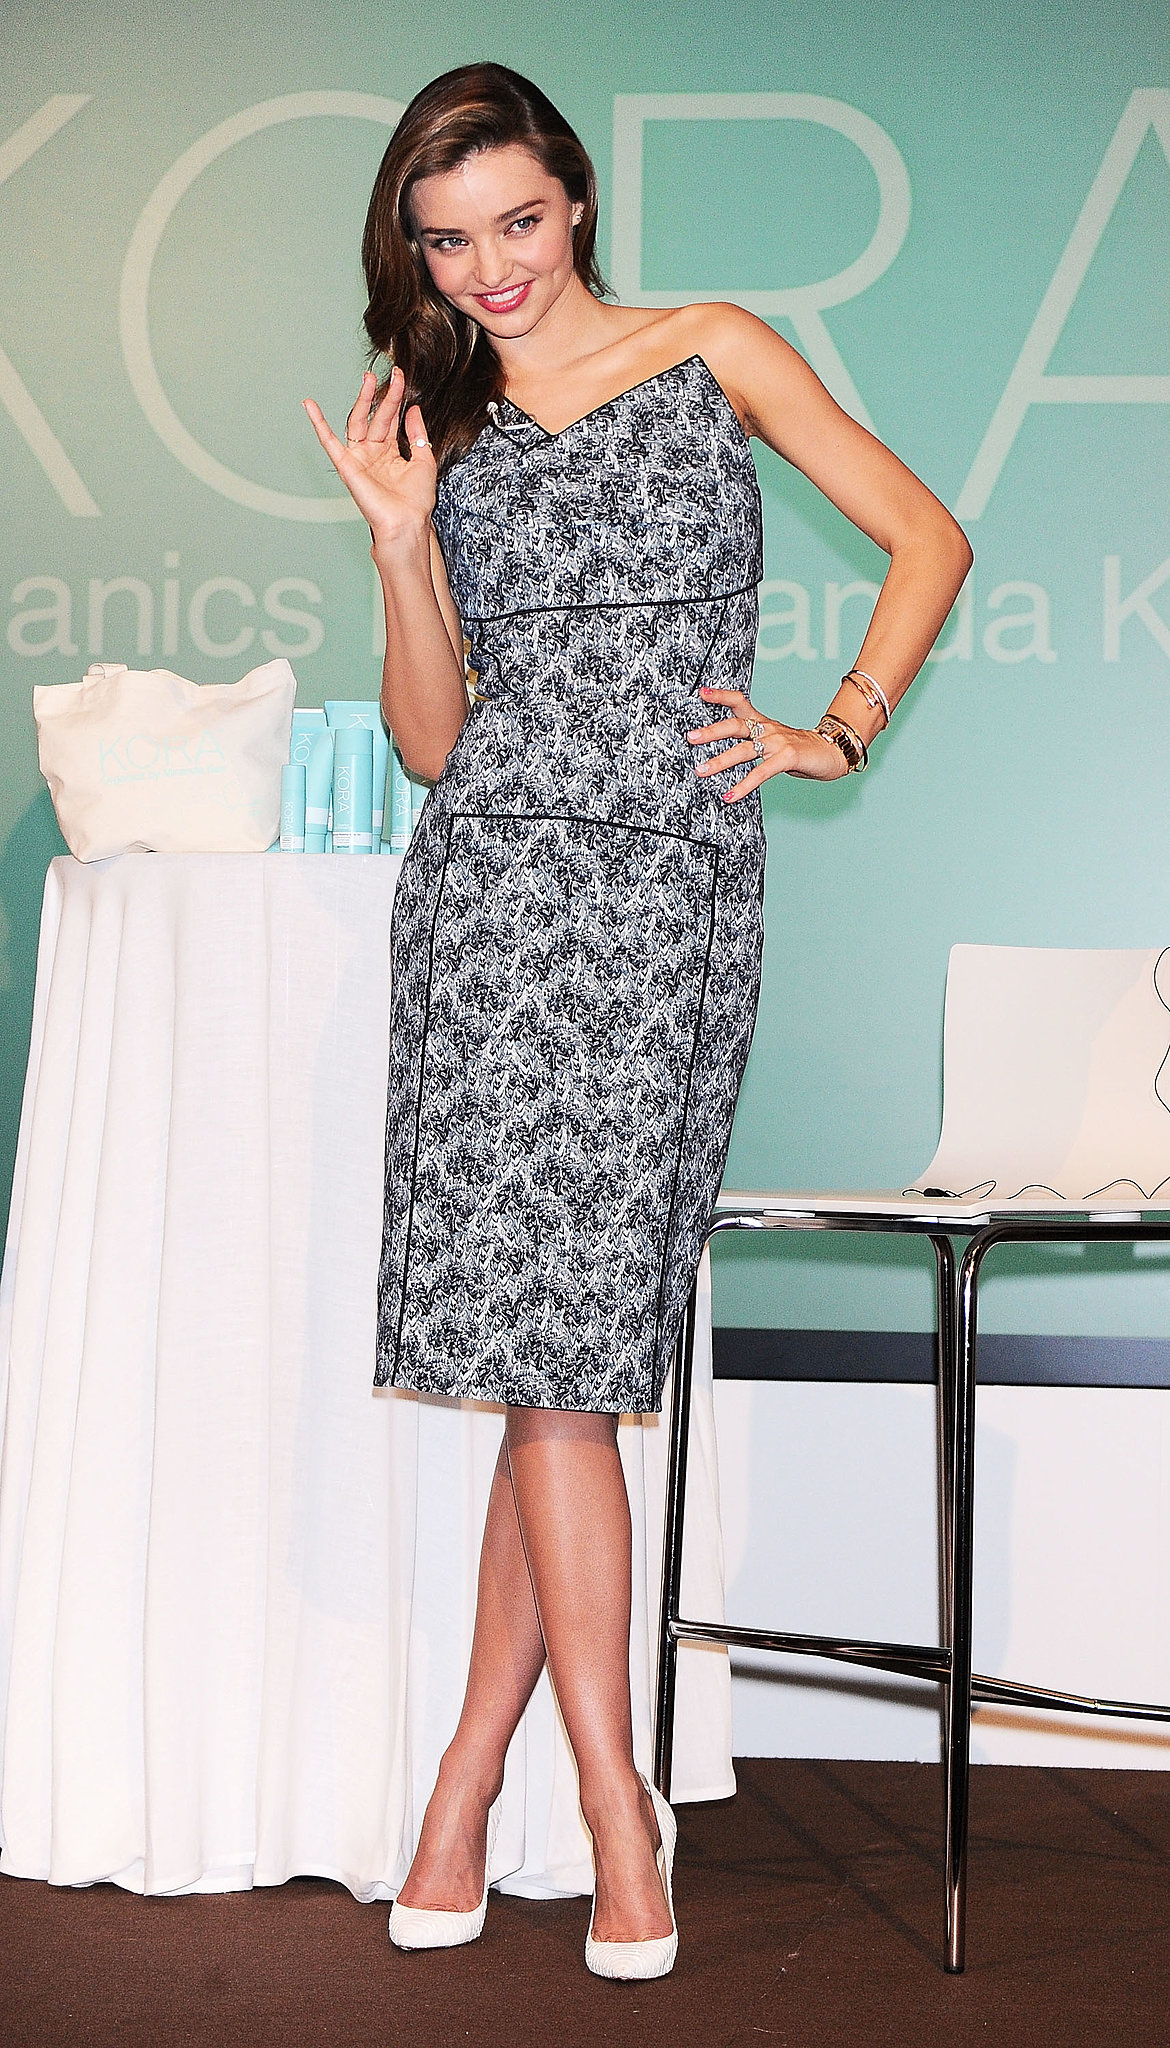 Miranda Kerr waved to fans wearing a printed bustier dress and white pumps at a Kora Organics press conference in Tokyo.